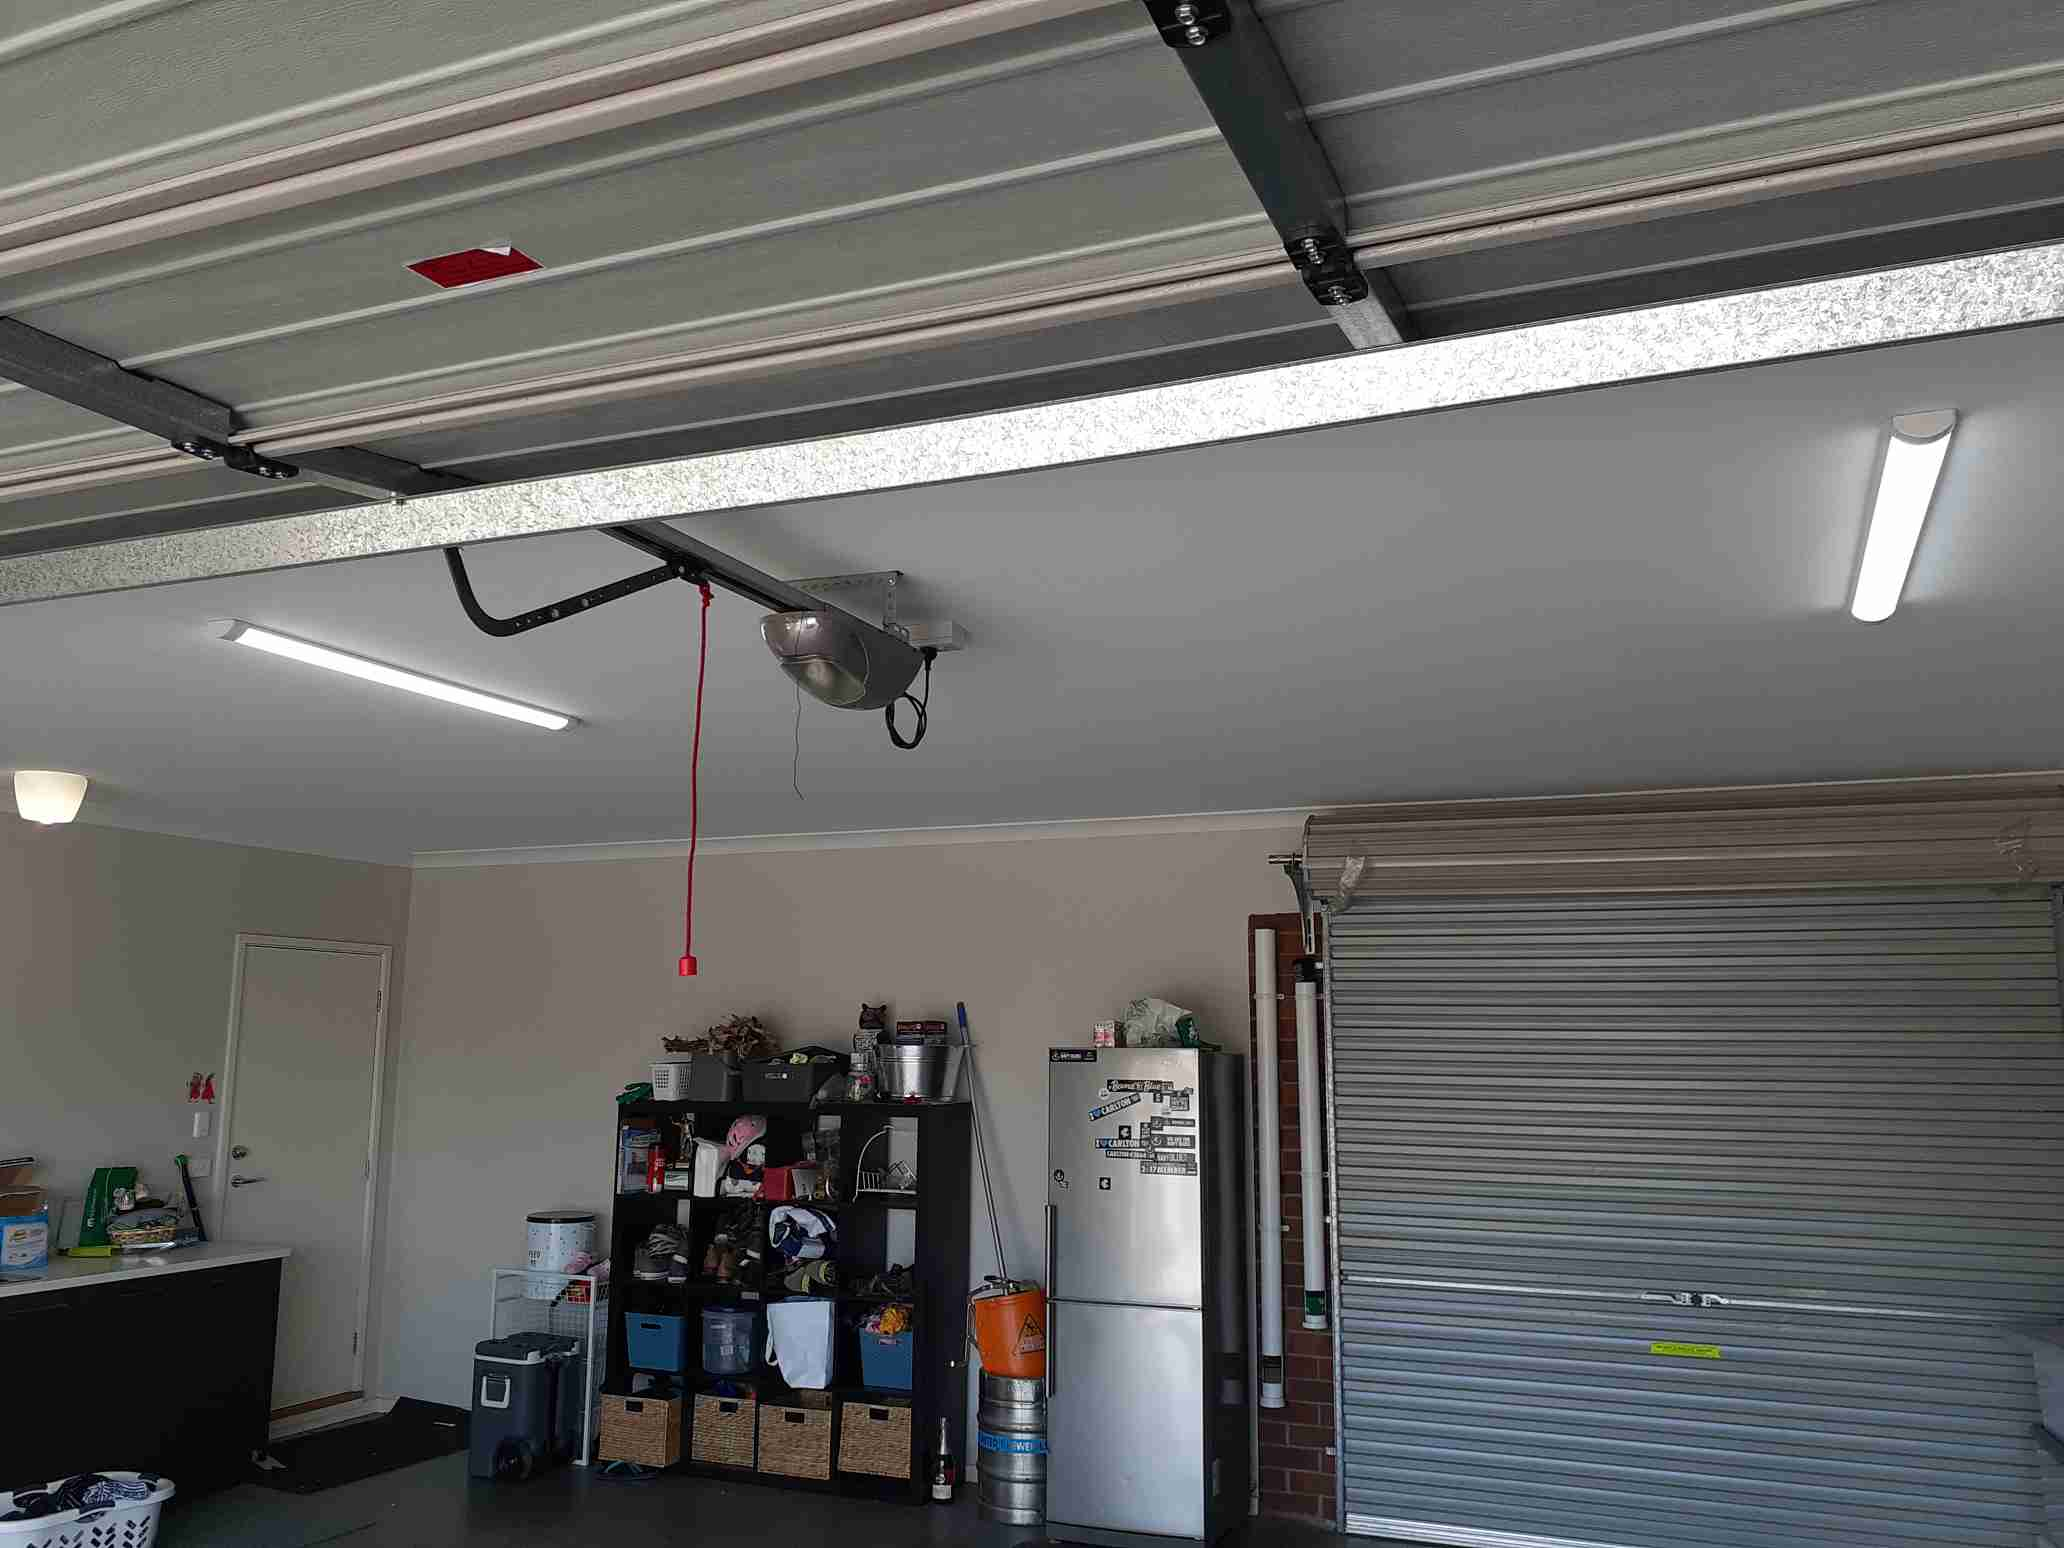 Electrical Installation - Lighting - Newcomb By Mr. Electric of Geelong via i4Tradies